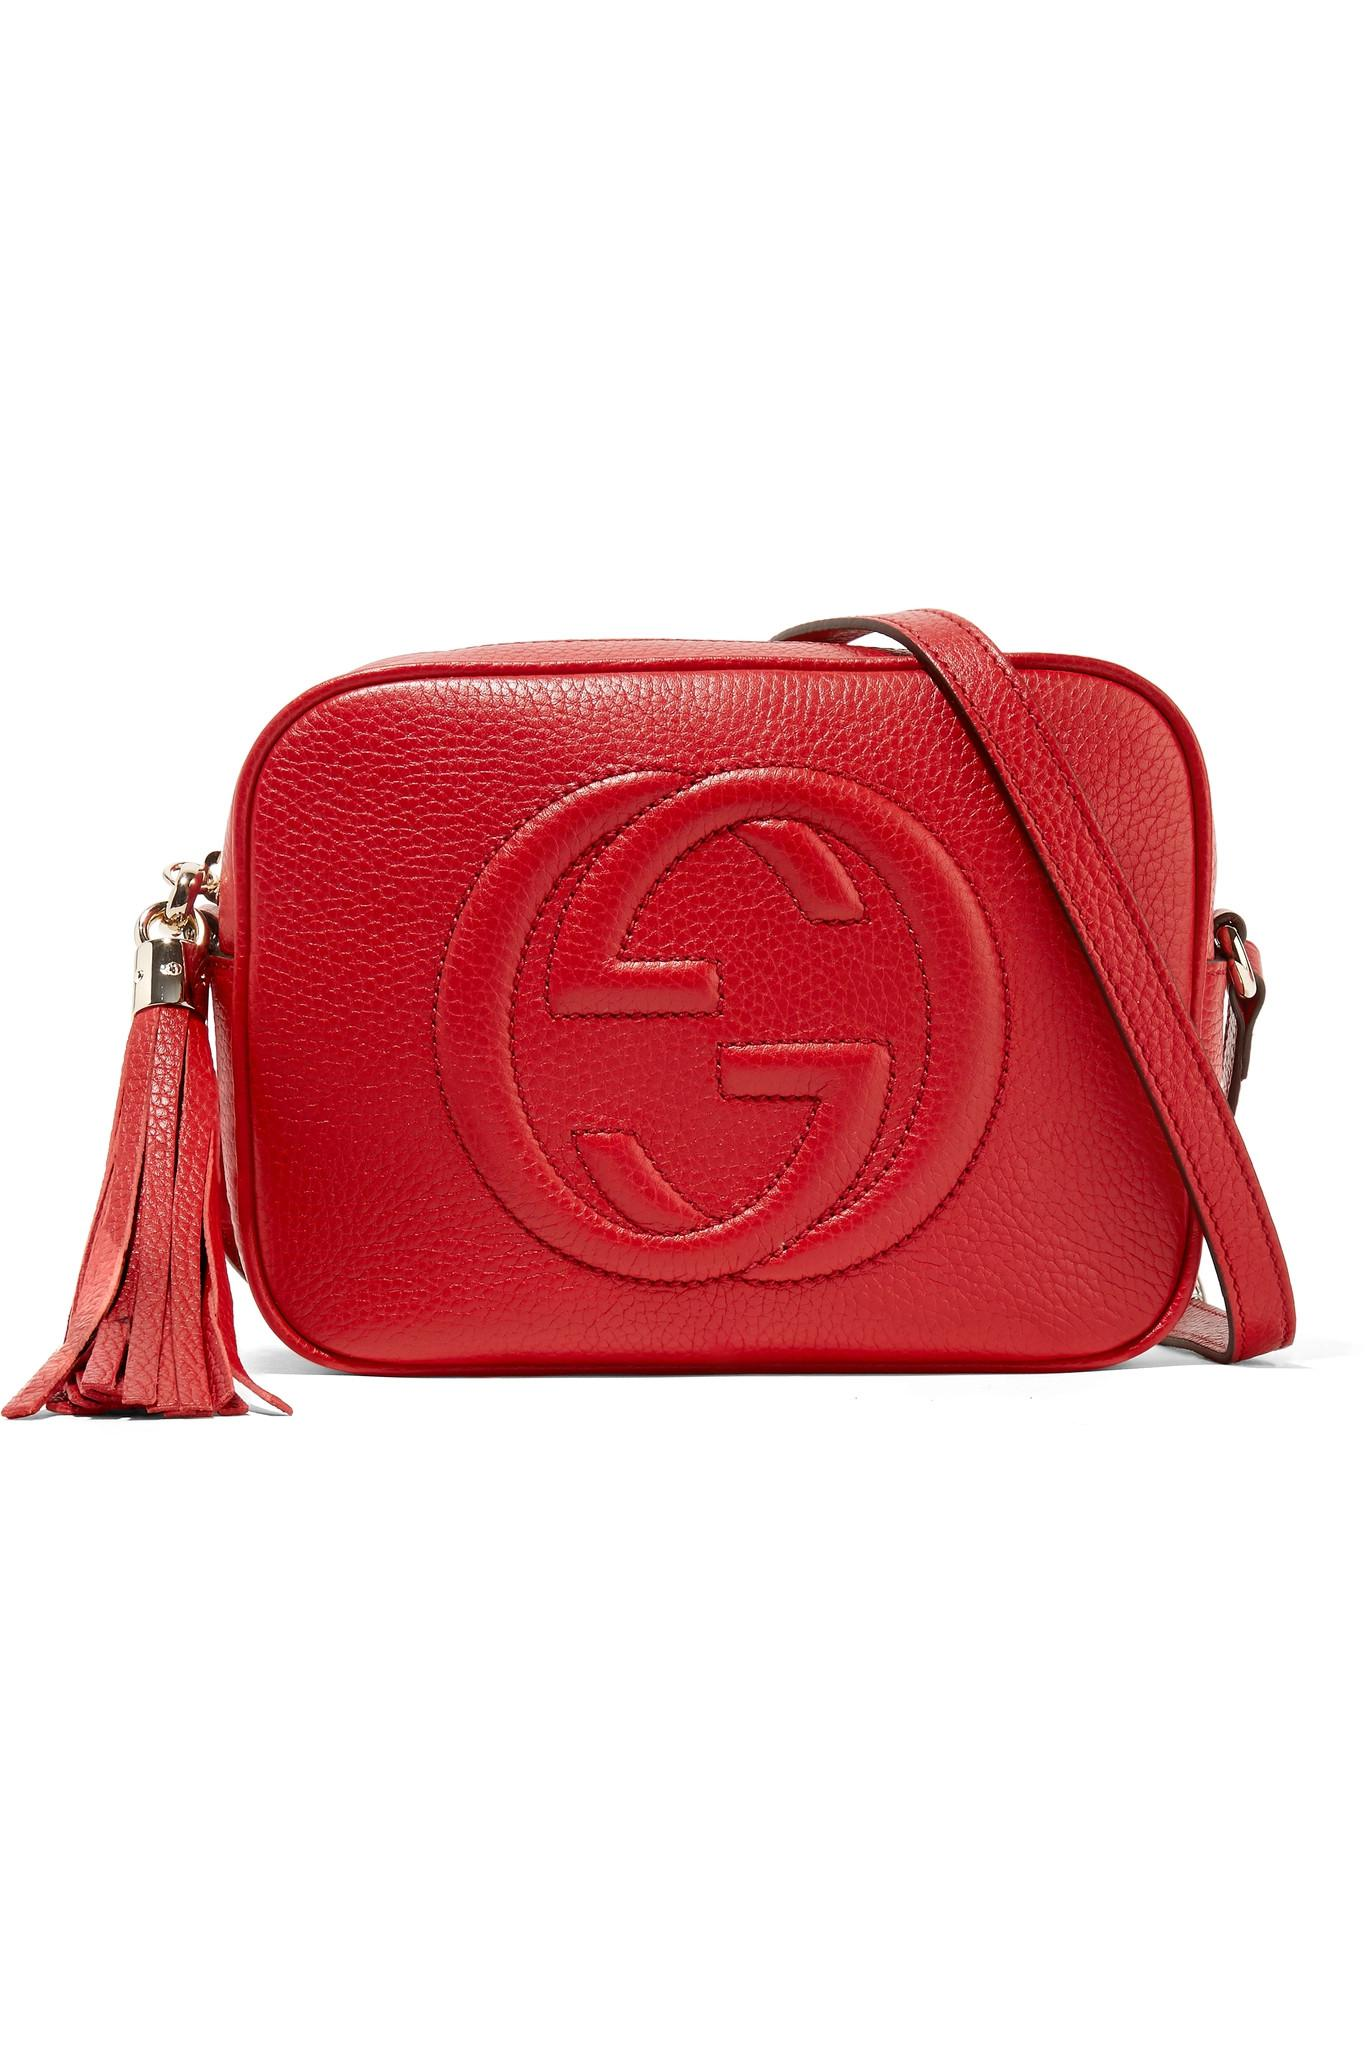 84940c3f8d6 Gucci Soho Disco Textured-leather Shoulder Bag Red One Size in Red ...